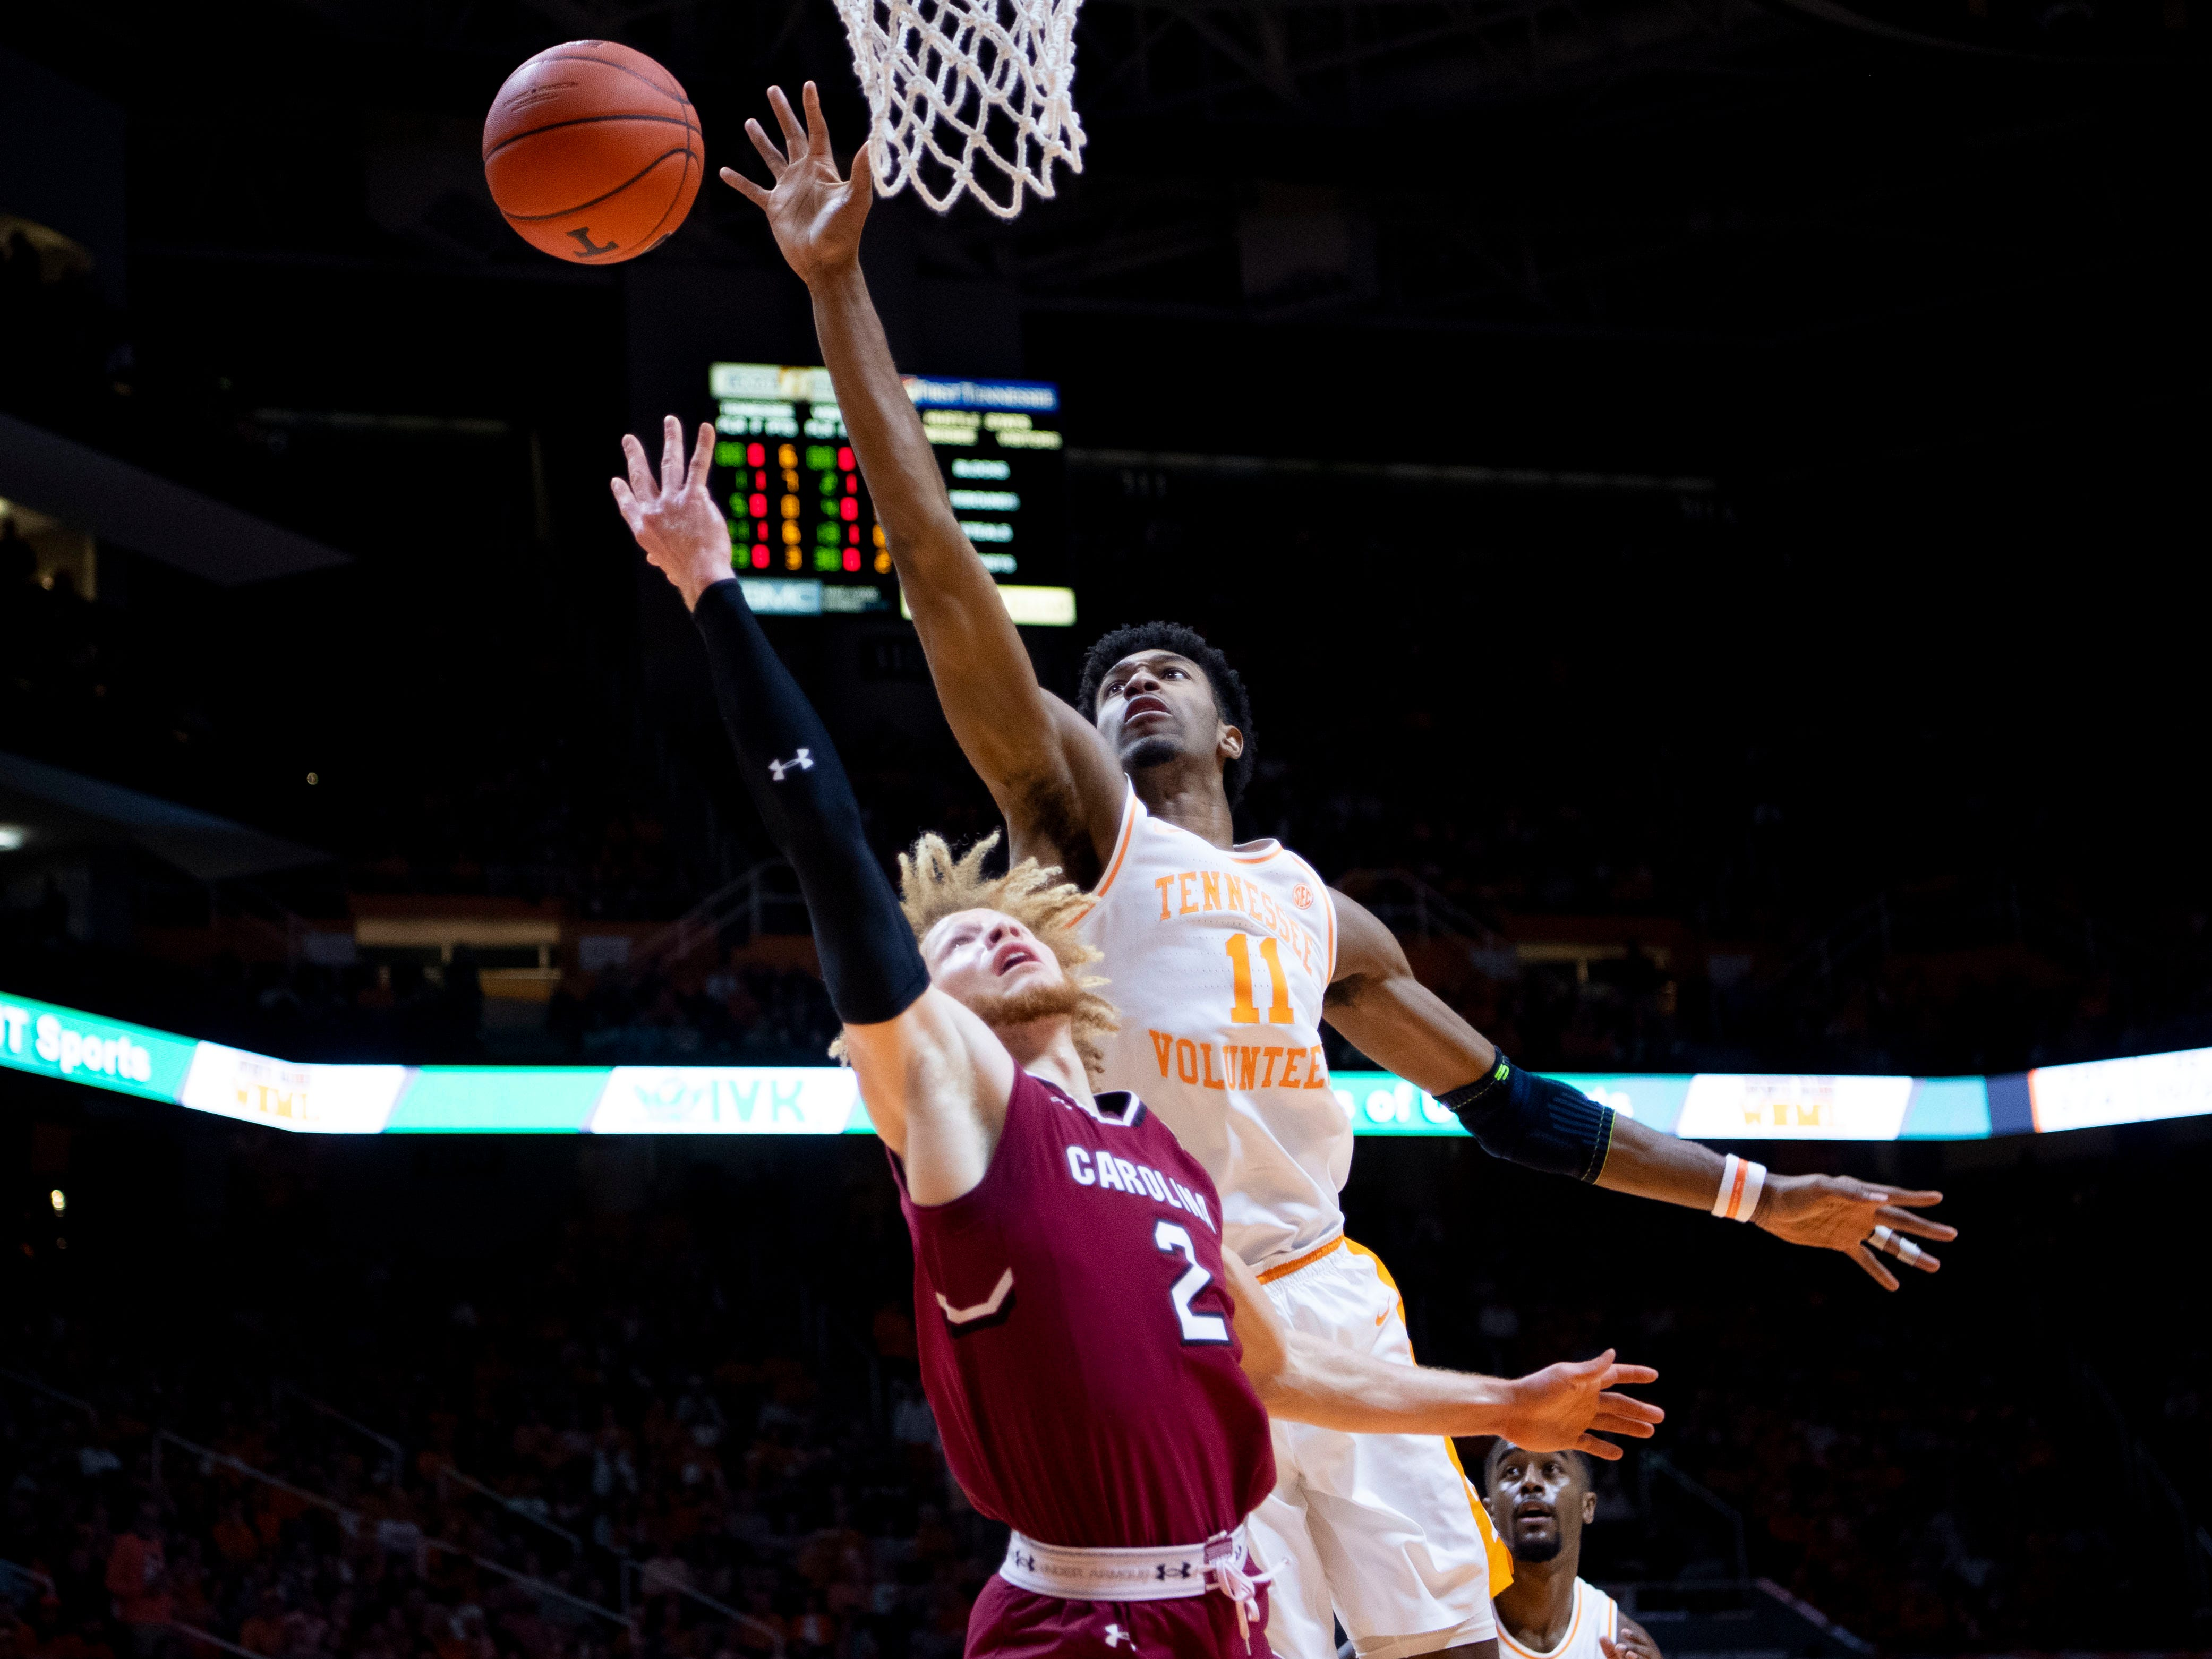 South Carolina guard Hassani Gravett (2) is guarded by Tennessee's Kyle Alexander (11) on Wednesday, February 13, 2019.